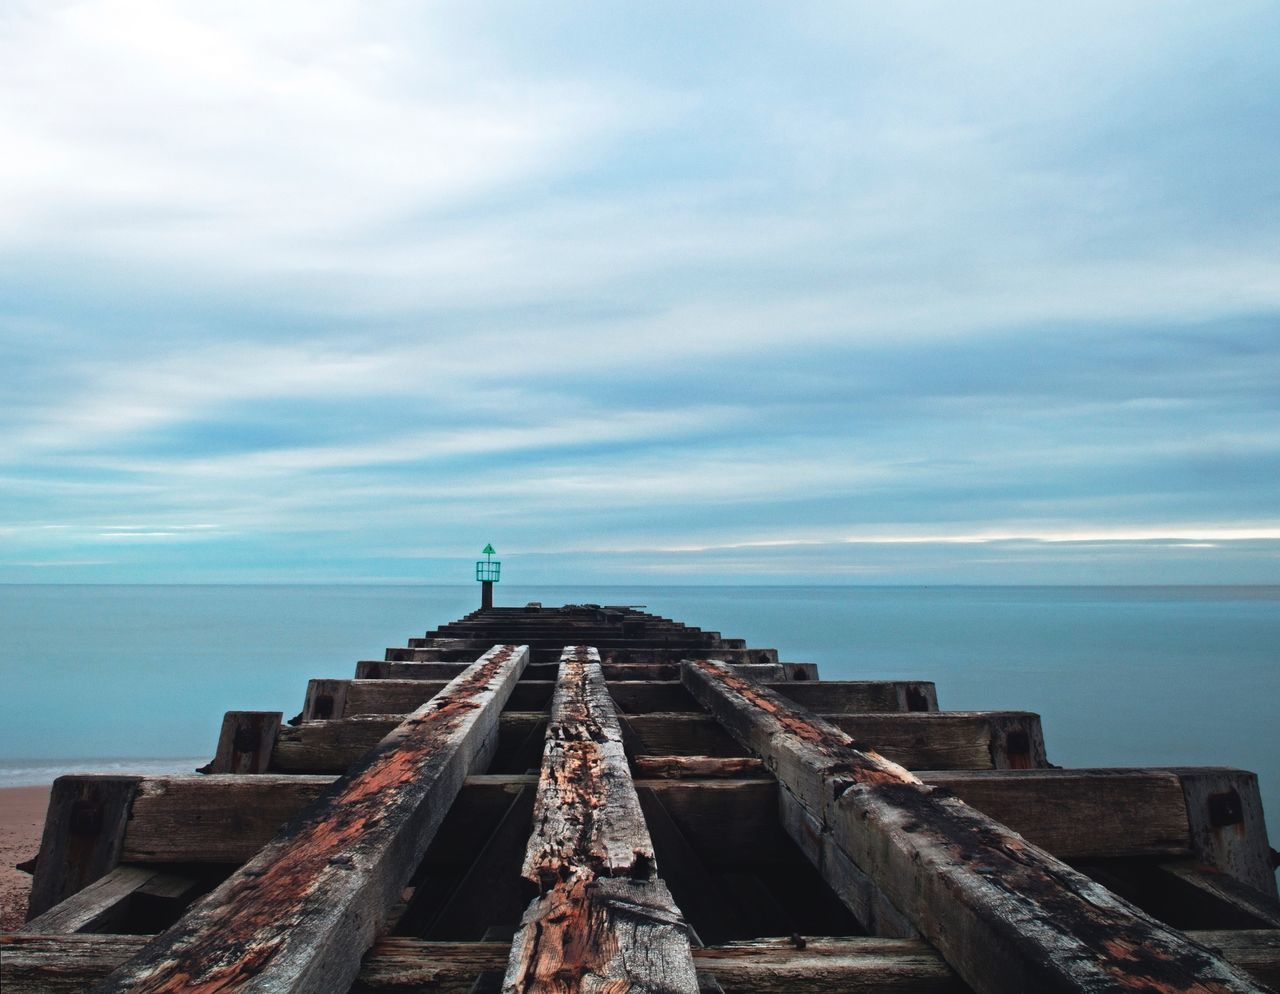 sea, water, horizon over water, cloud - sky, sky, scenics, nature, pier, tranquility, tranquil scene, day, no people, beauty in nature, outdoors, jetty, blue, groyne, fishing pole